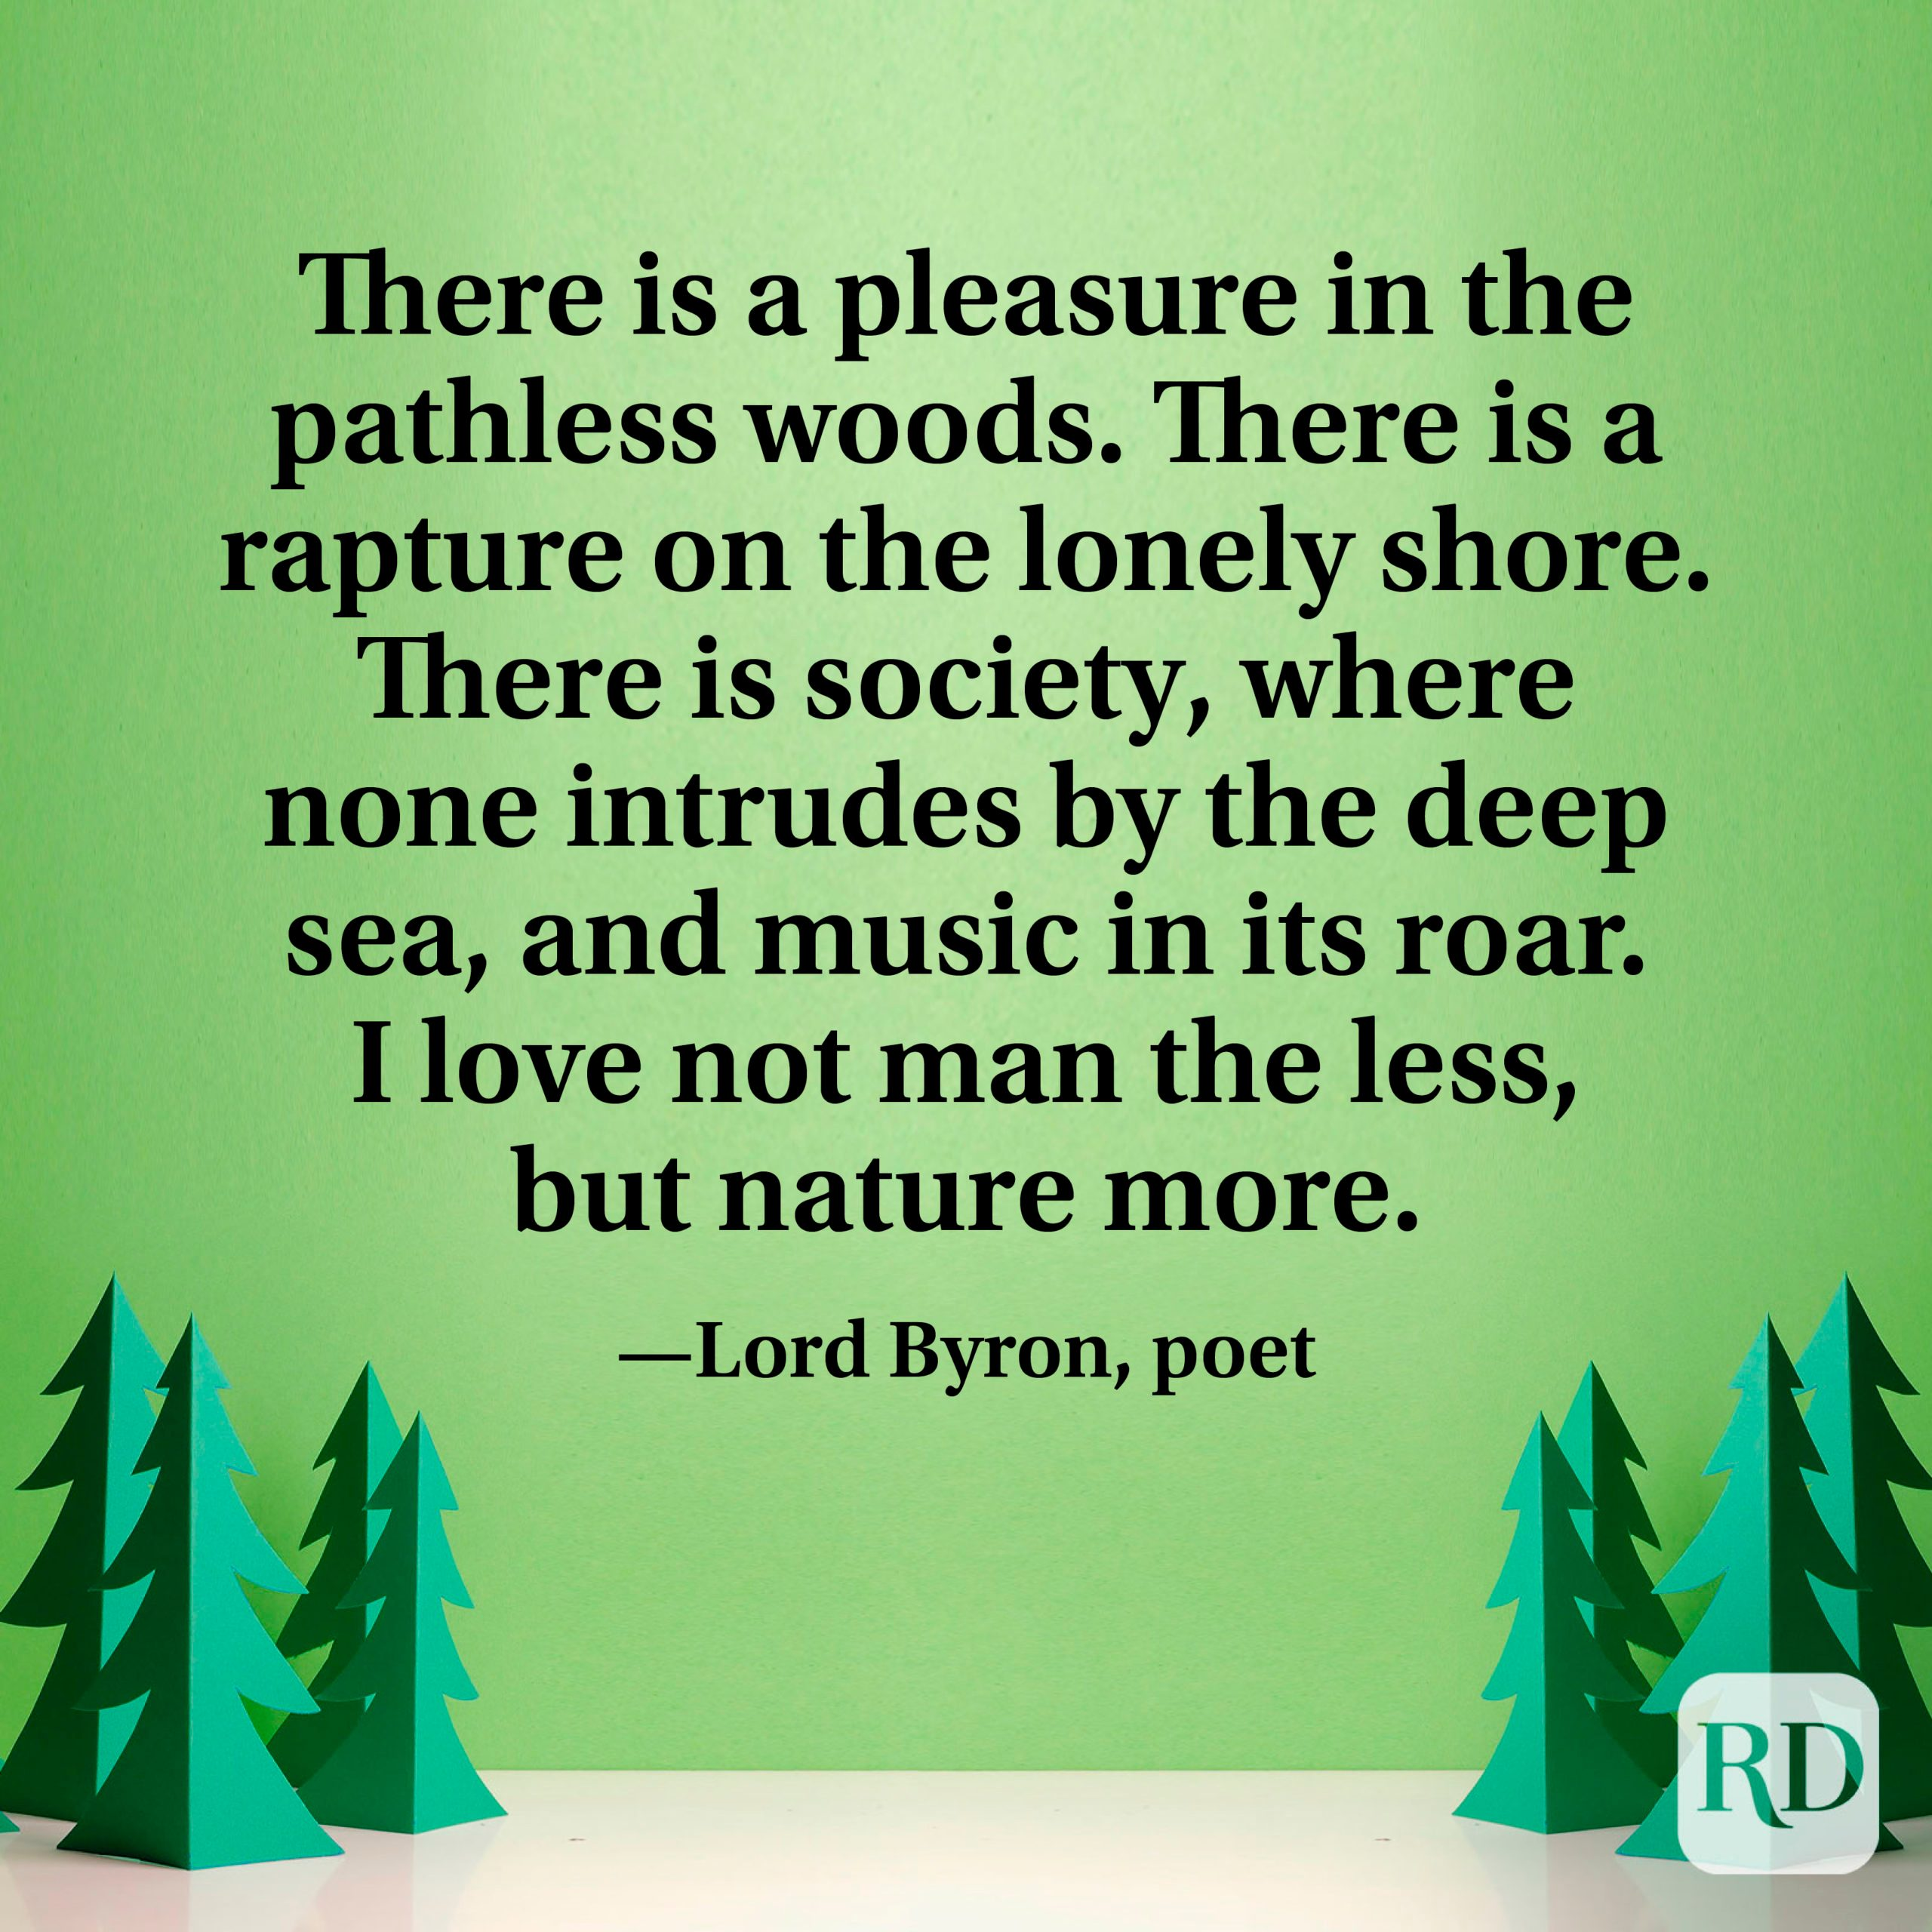 """There is a pleasure in the pathless woods. There is a rapture on the lonely shore. There is society, where none intrudes by the deep sea, and music in its roar. I love not man the less, but nature more."""" —Lord Byron, poet"""